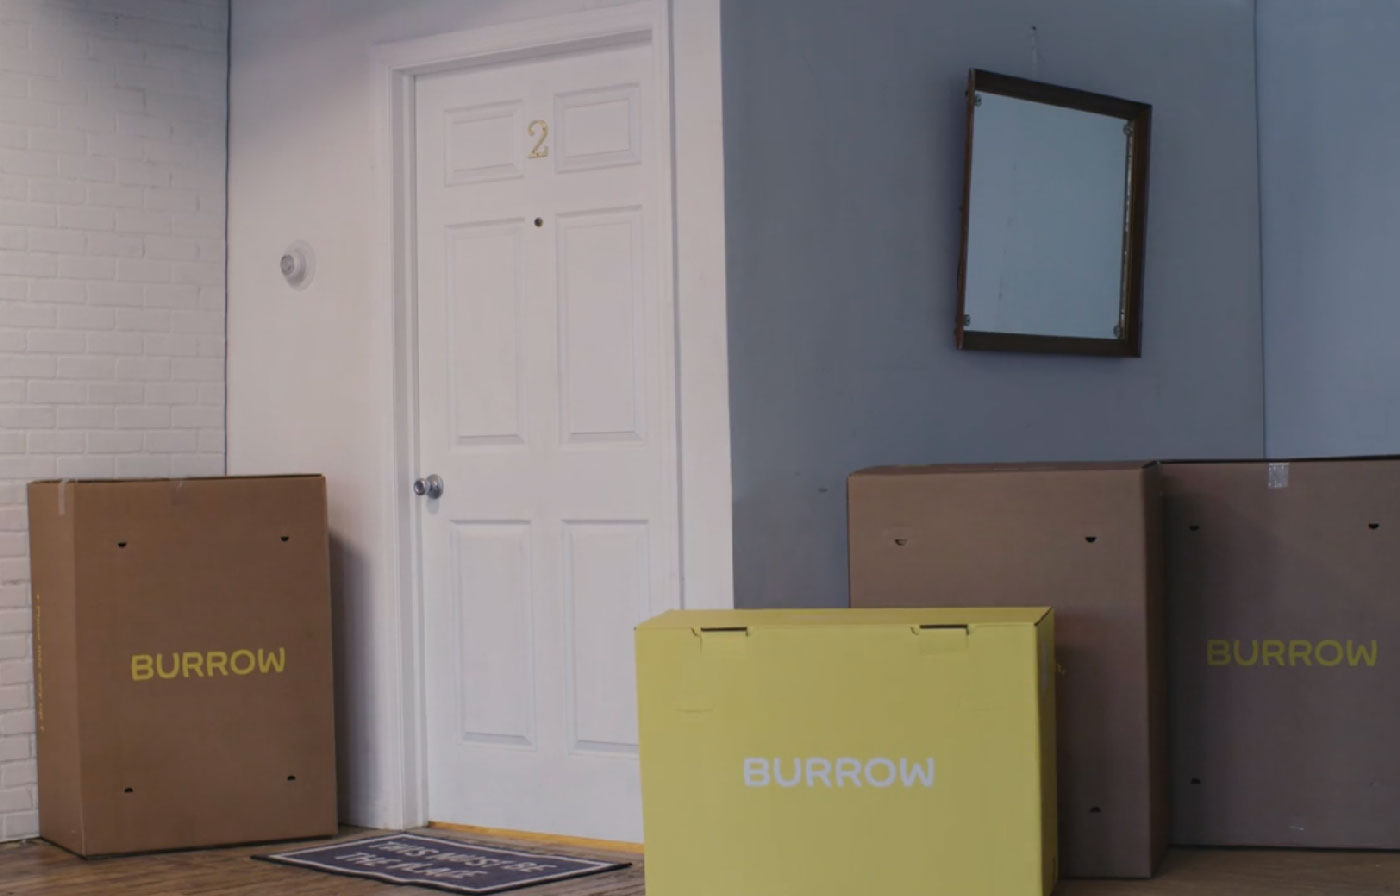 Burrow Sofa Delivery Boxes